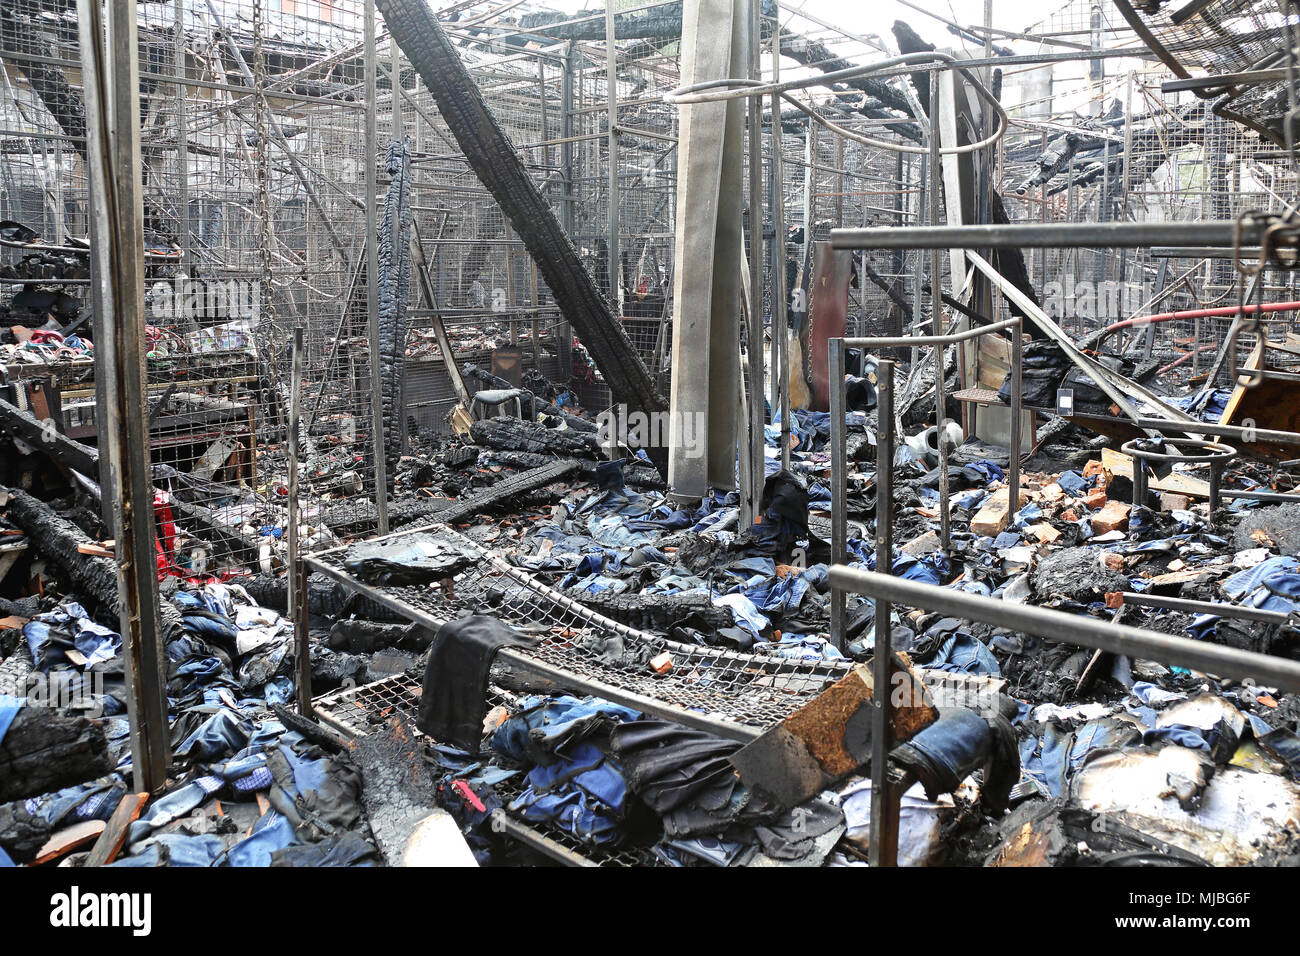 Burned Sweatshop Garment Factory After Fire Disaster - Stock Image